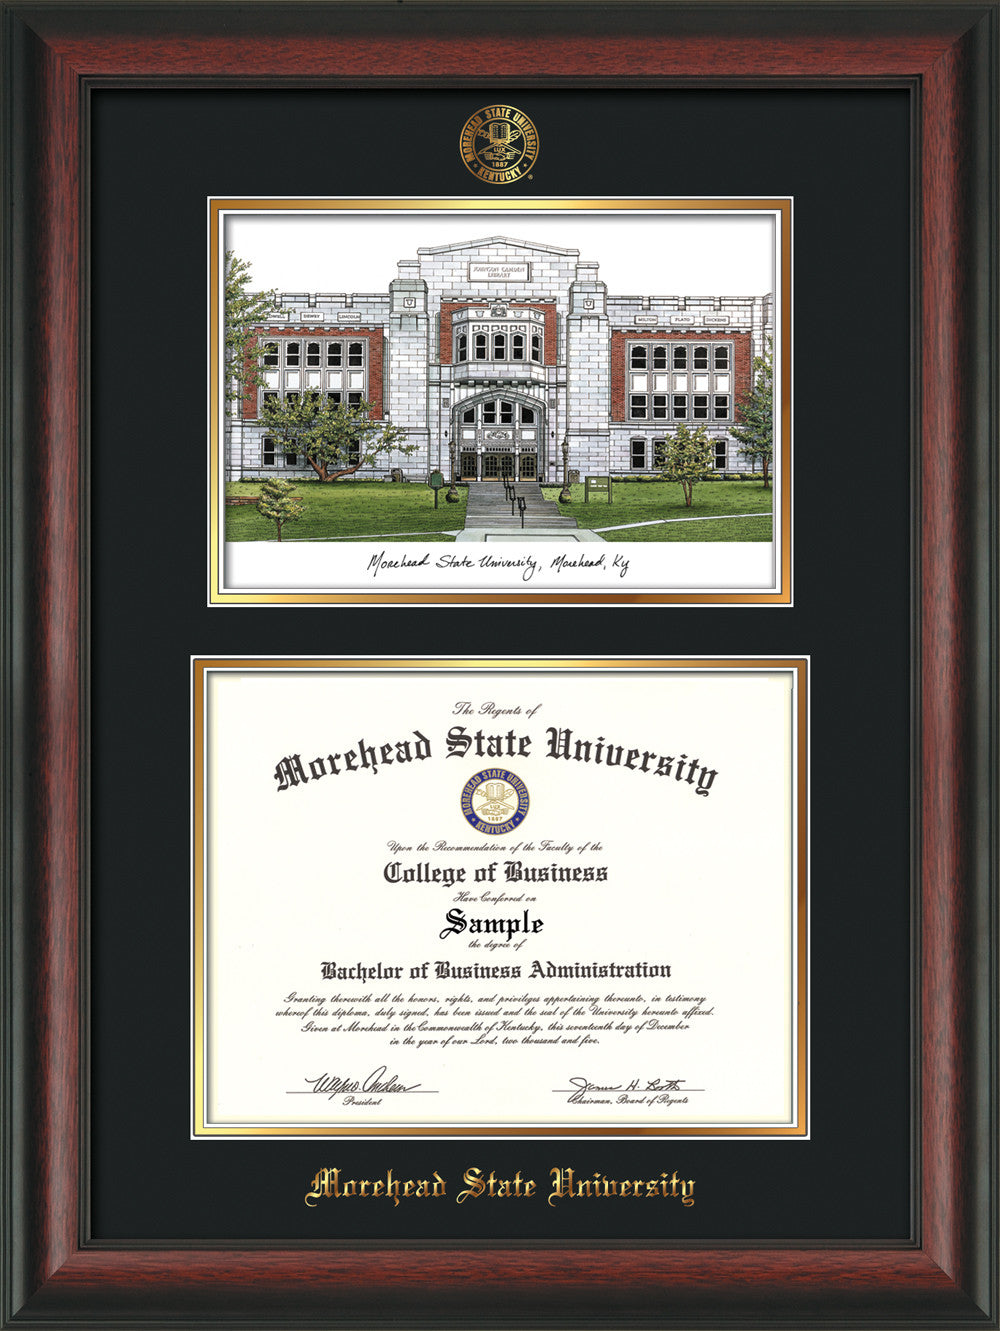 Perfect Msu Diploma Frame Gift - Framed Art Ideas - roadofriches.com